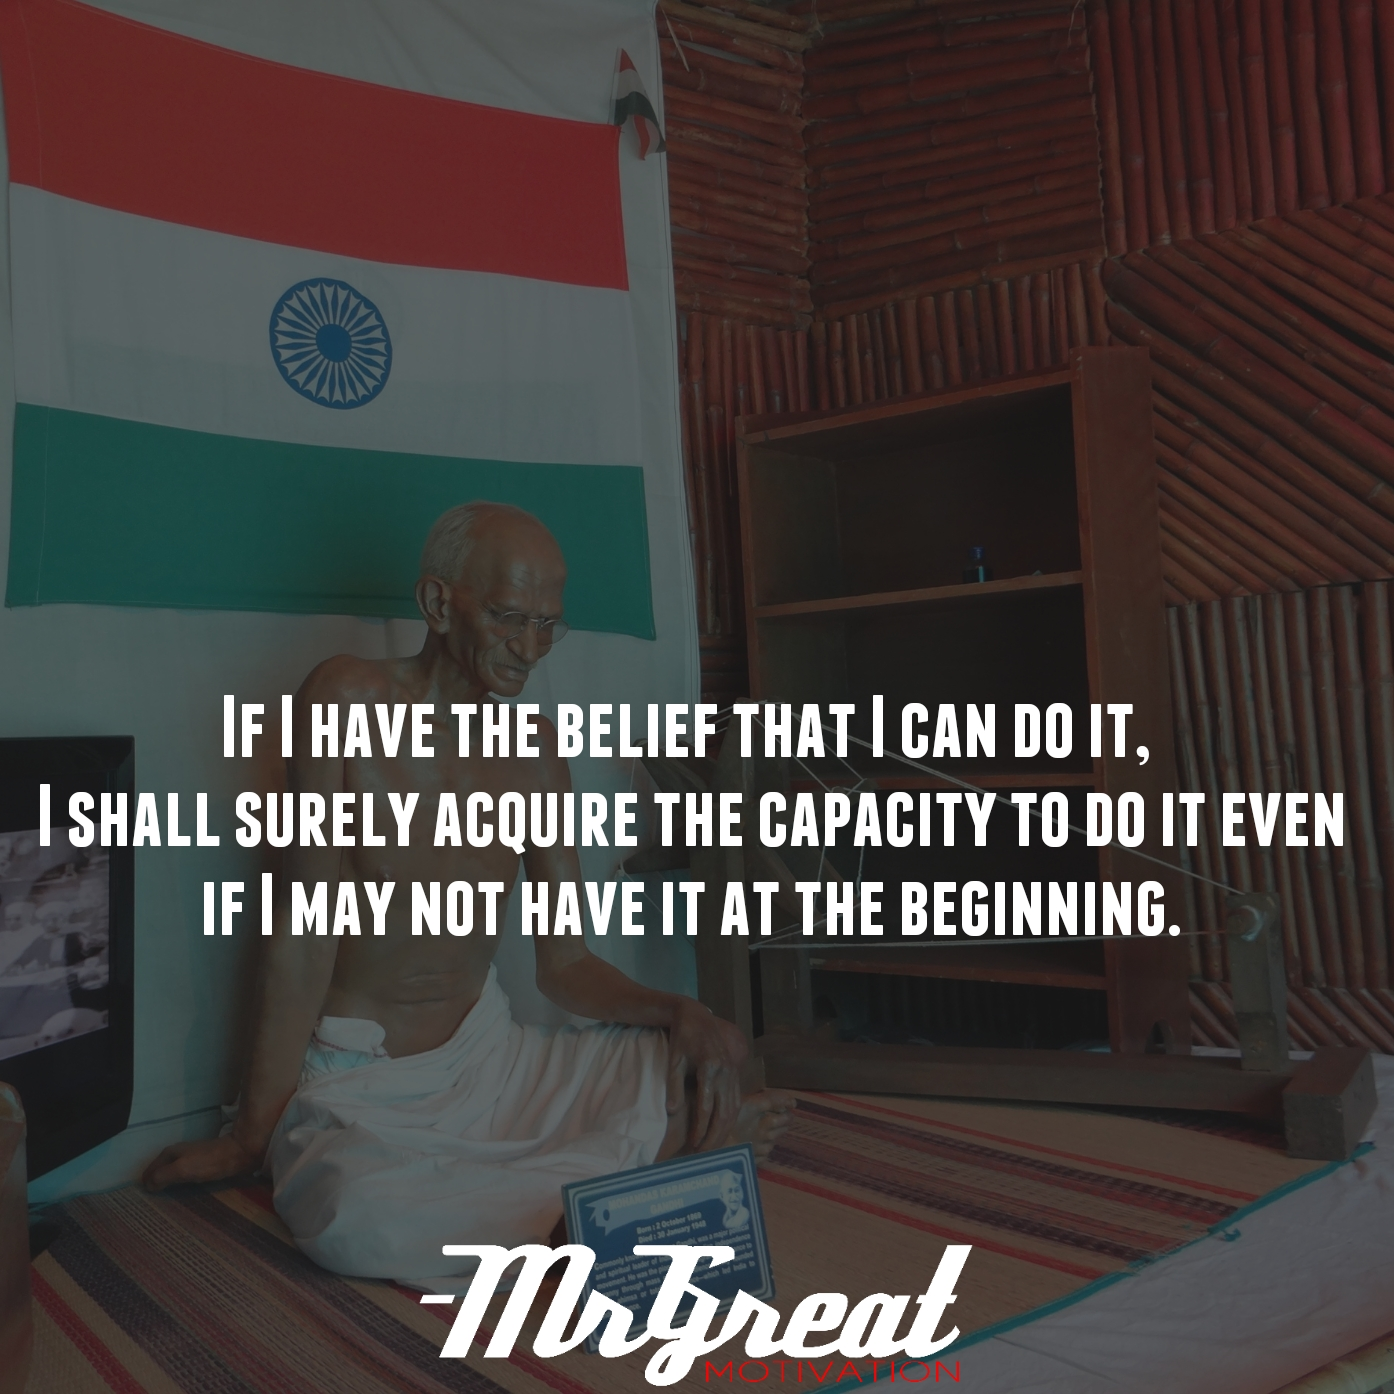 If I have the belief that I can do it, I shall surely acquire the capacity to do it even if I may not have it at the beginning - Mahatma Gandhi